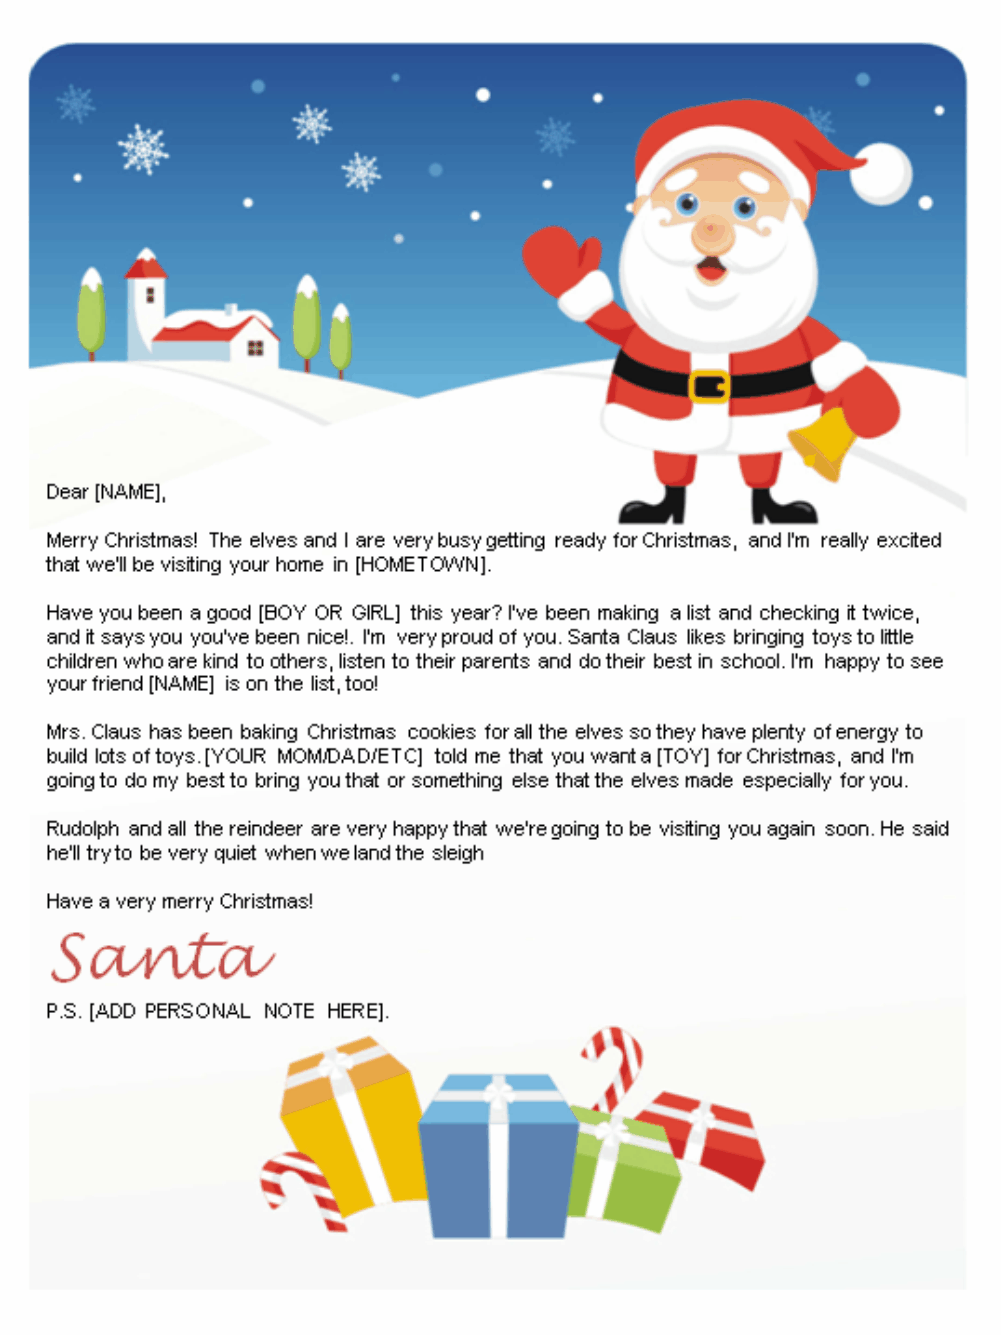 Free letters from santa santa letters to print at home for Generic letter from santa